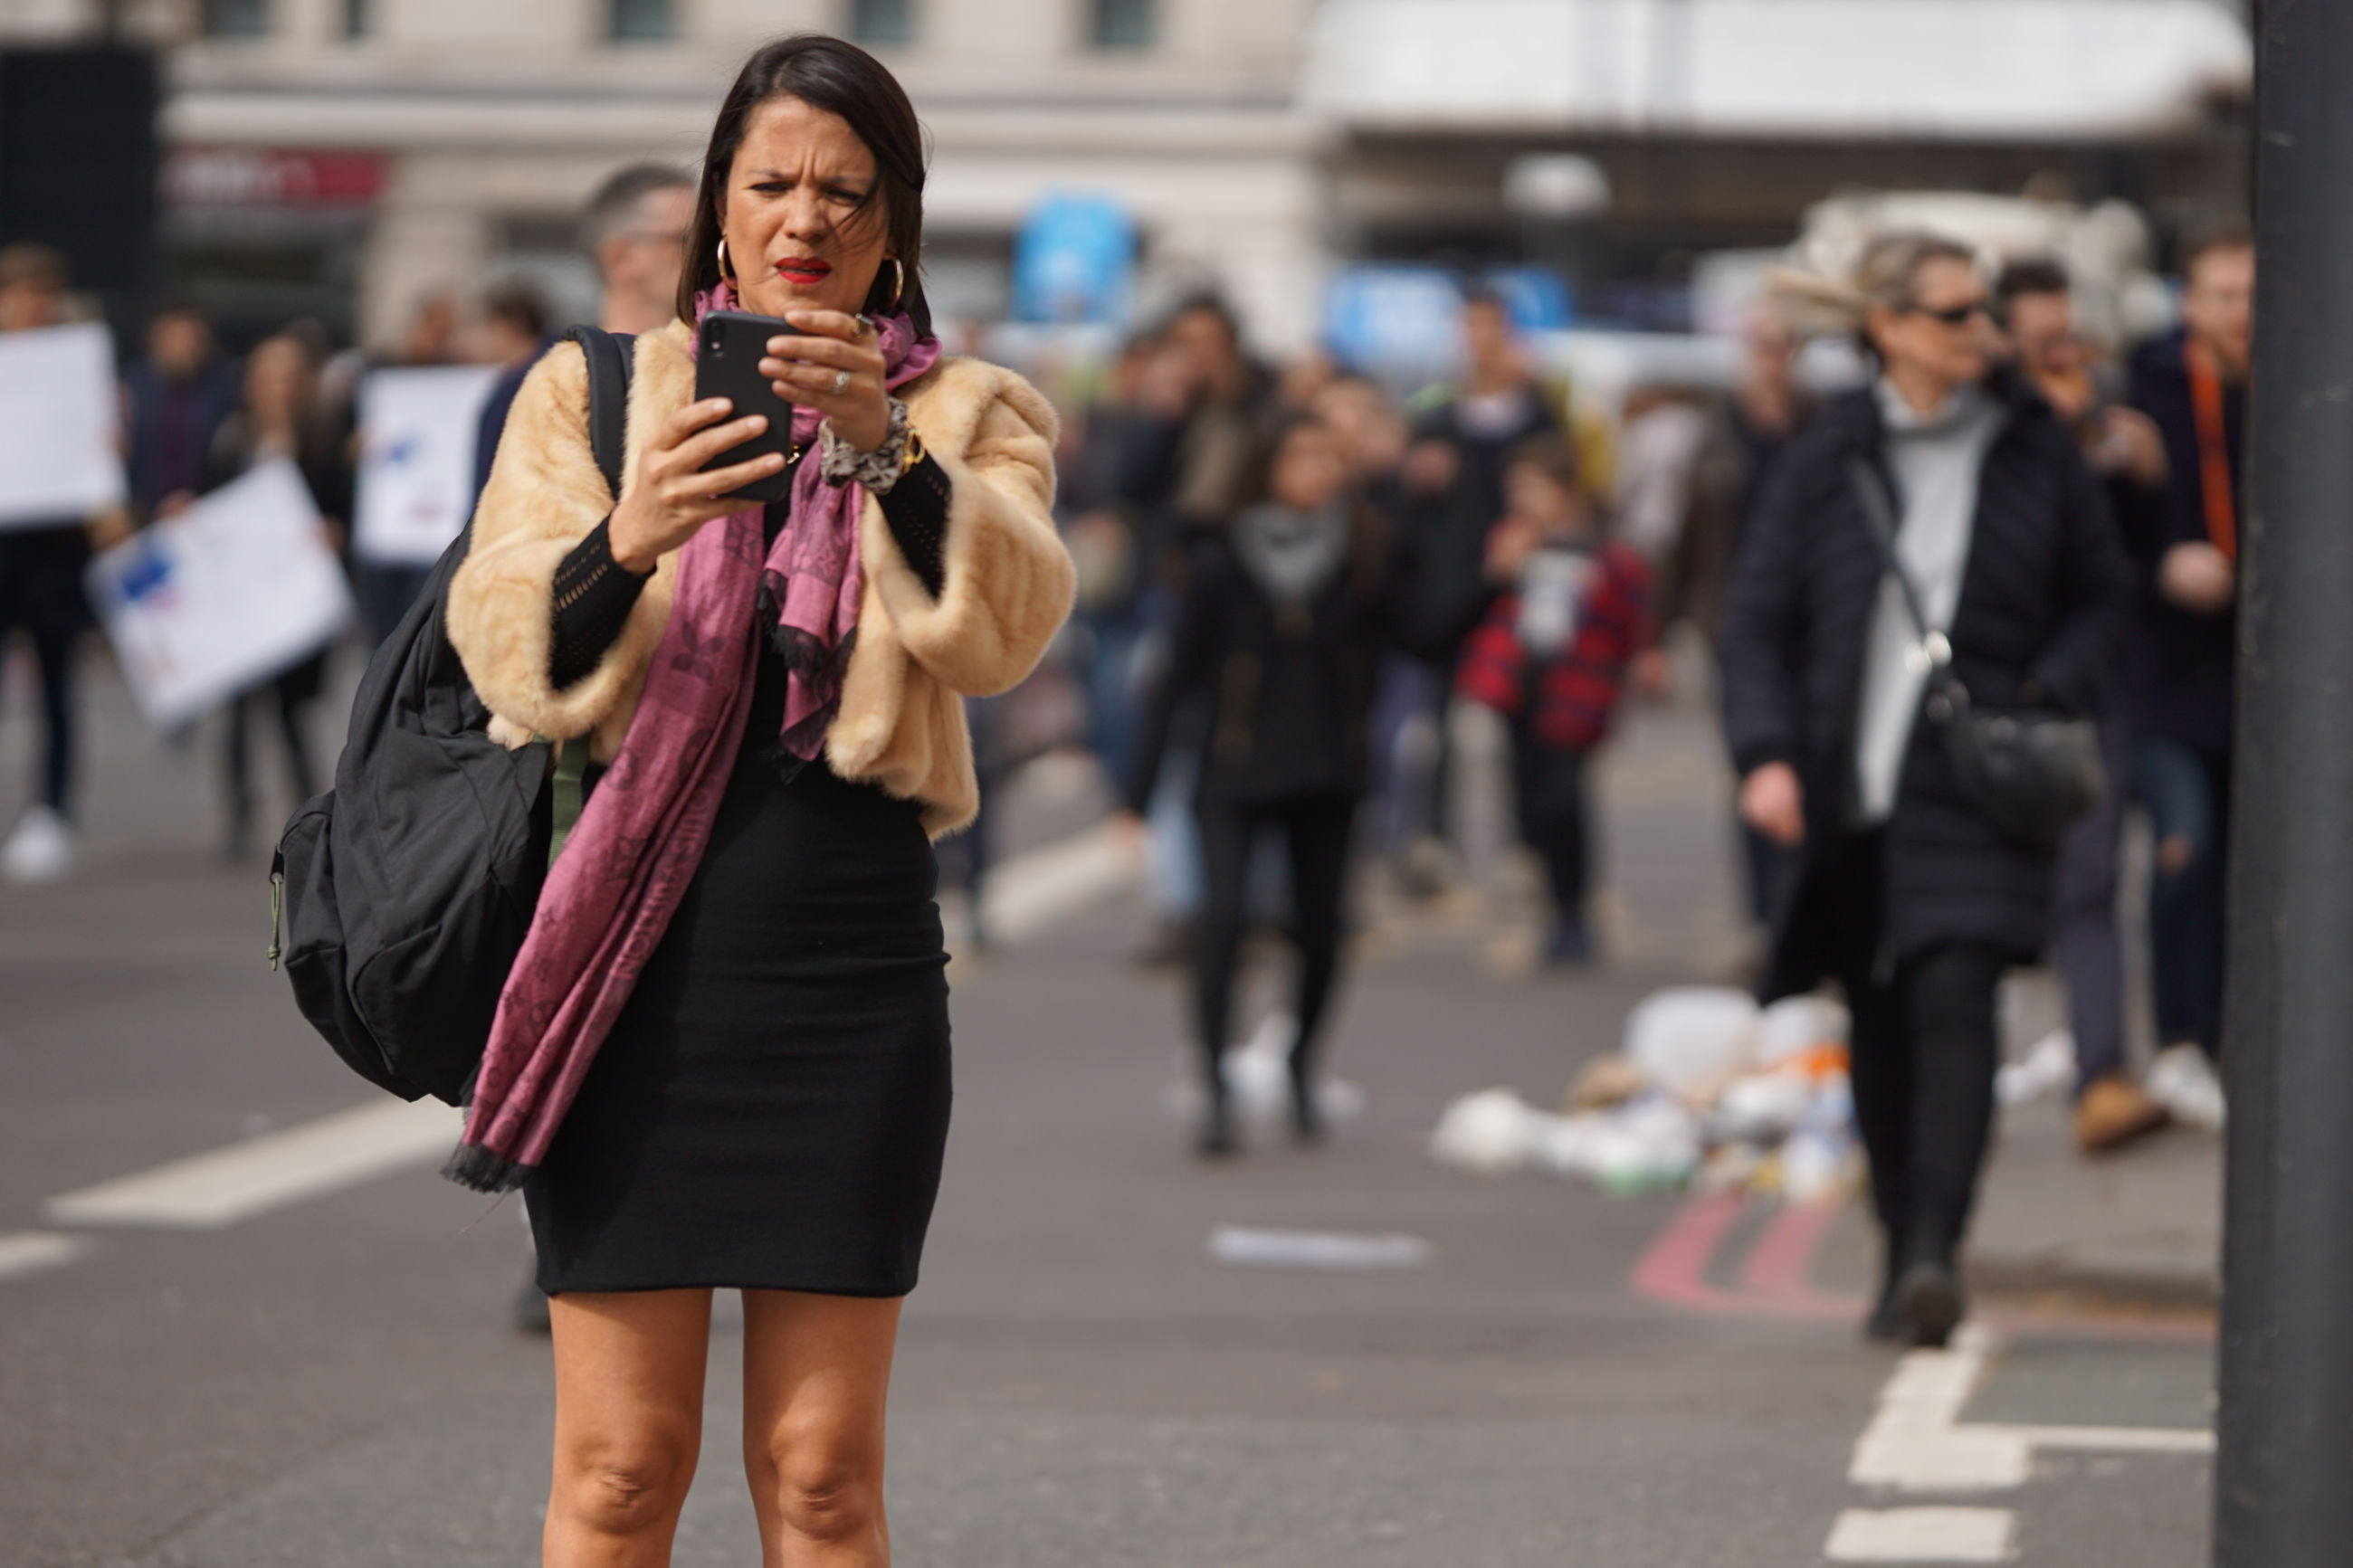 focus on foreground, real people, one person, city, adult, holding, lifestyles, standing, front view, incidental people, women, street, day, transportation, technology, leisure activity, young adult, clothing, communication, outdoors, hairstyle, scarf, warm clothing